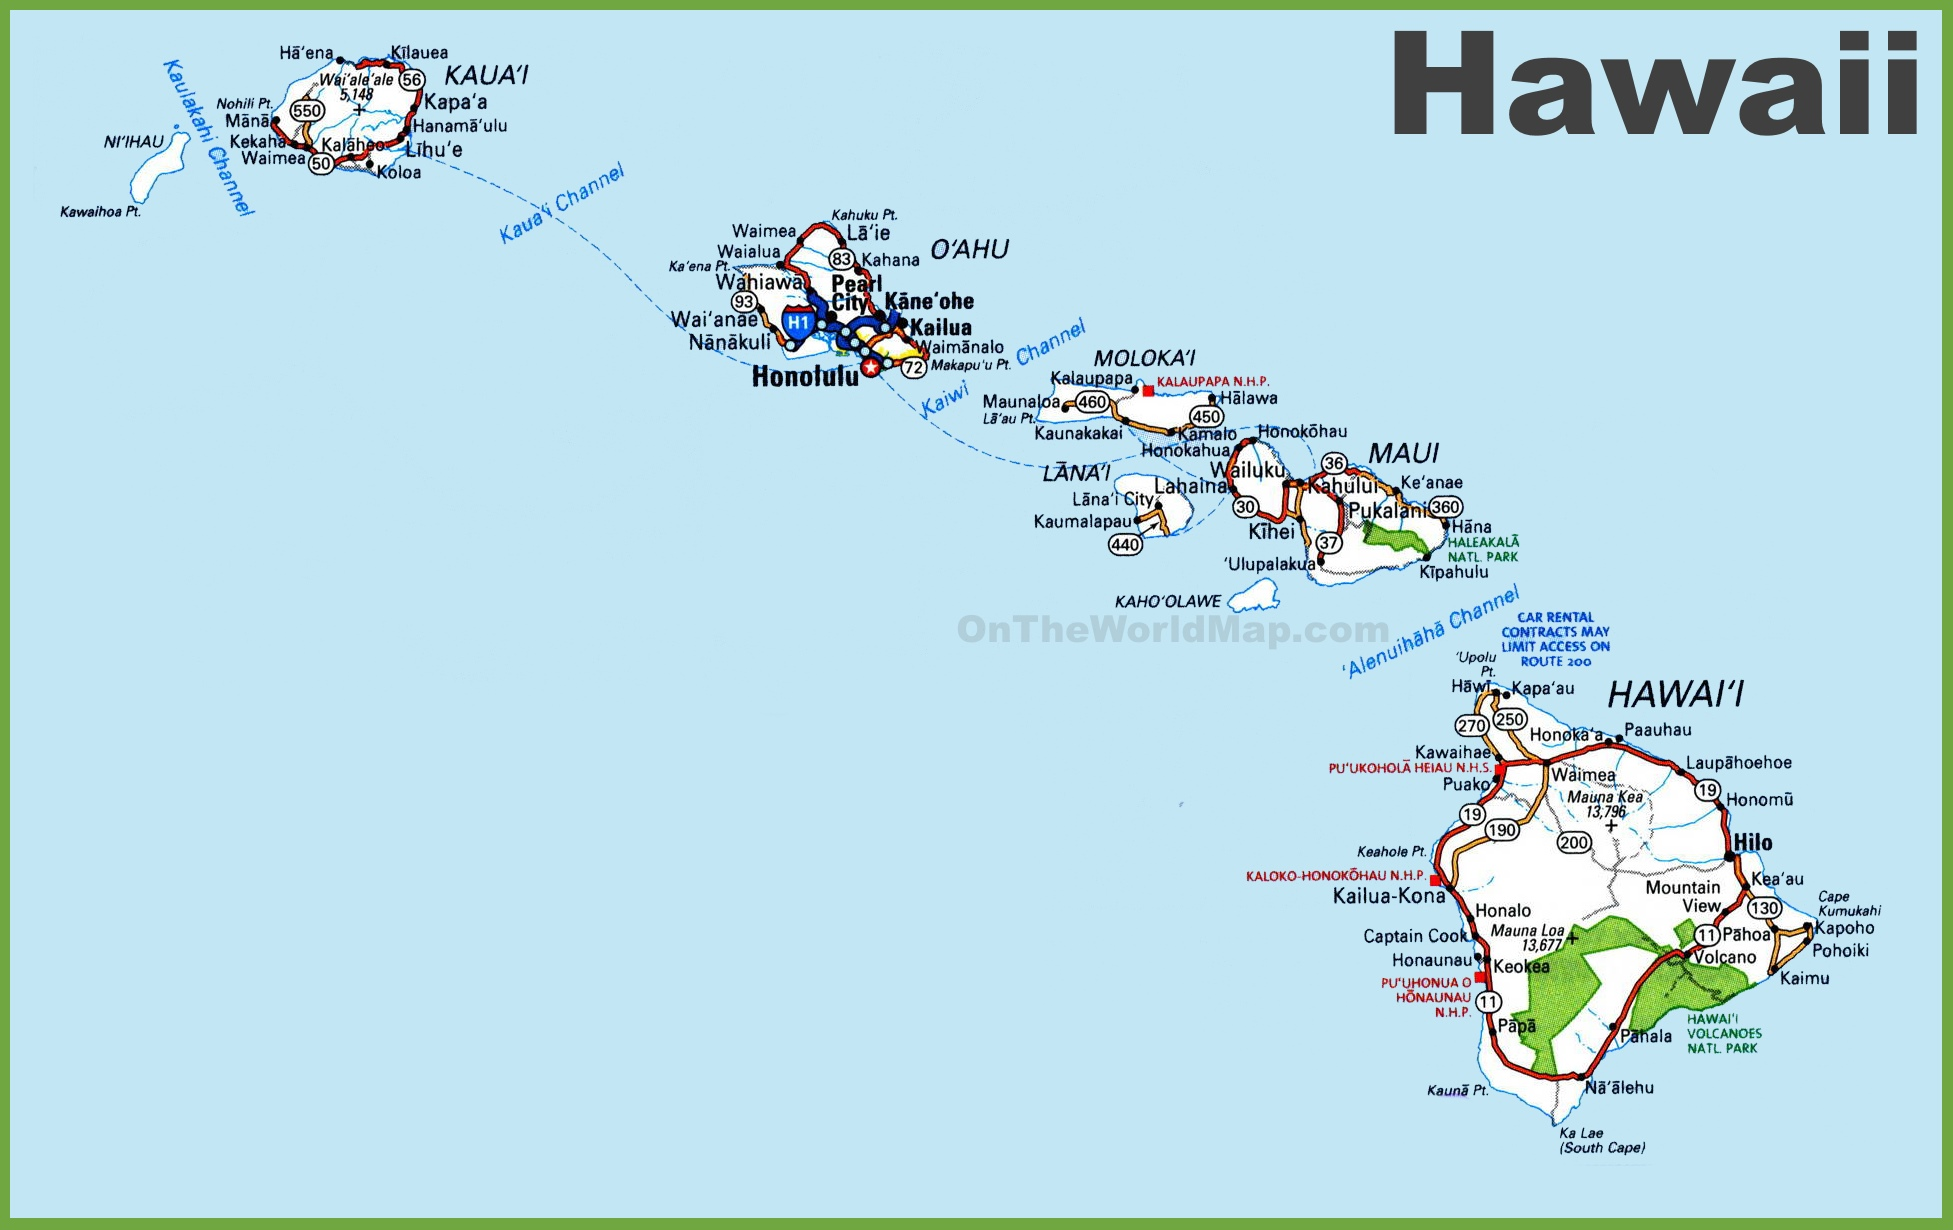 Hawaii State Maps USA Maps Of Hawaii Hawaiian Islands - Hawaii cities map